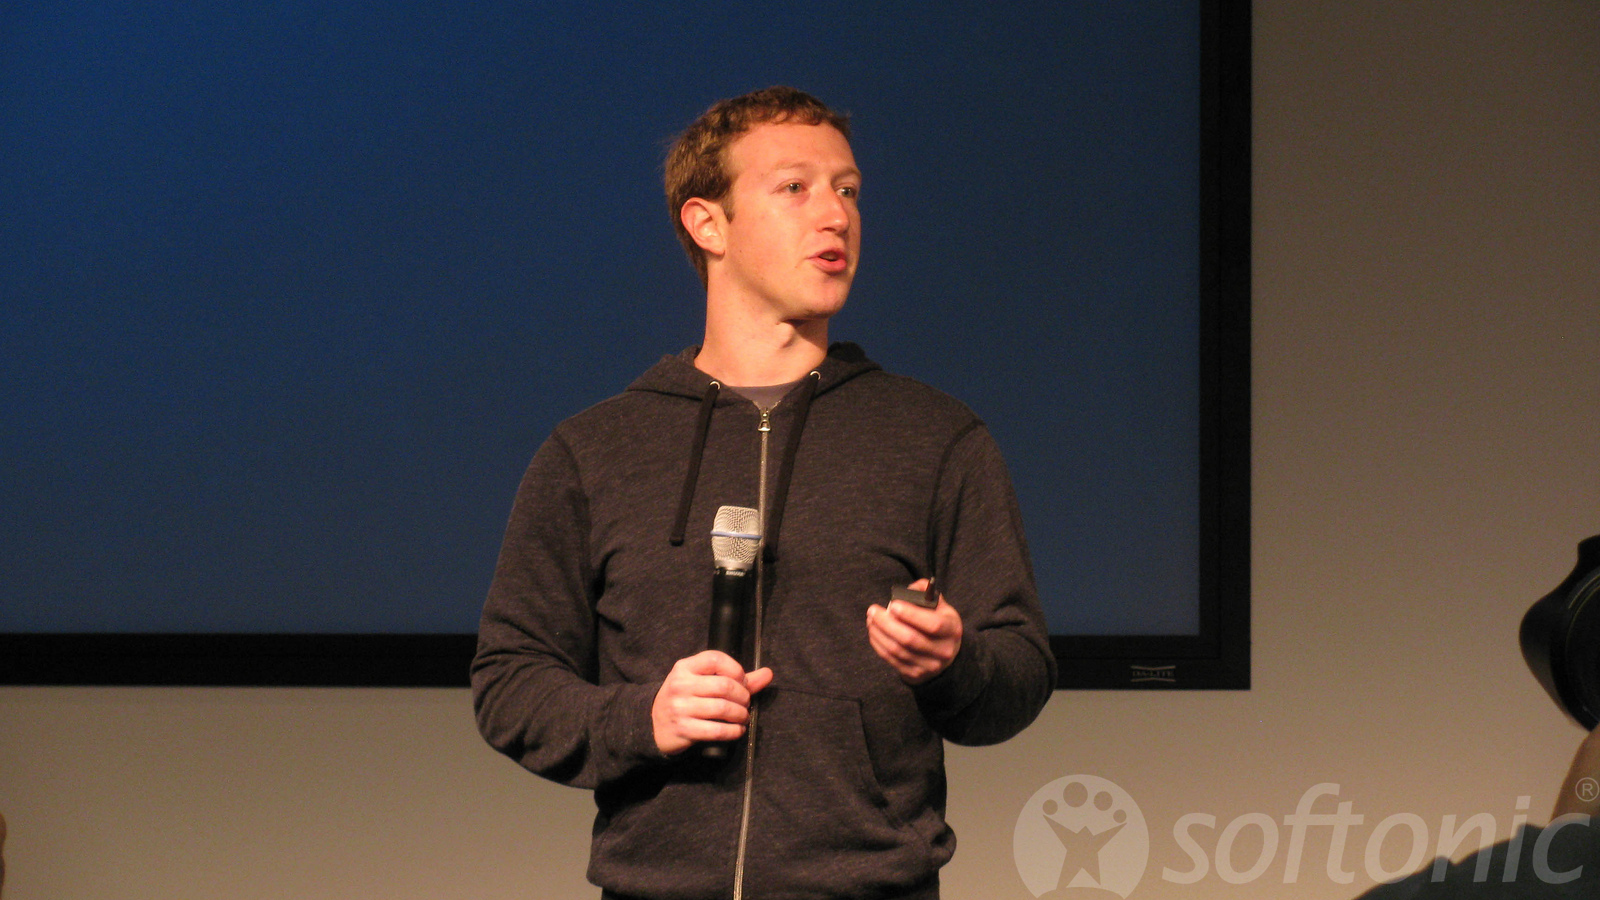 Facebook improves browsing security, enables https by default